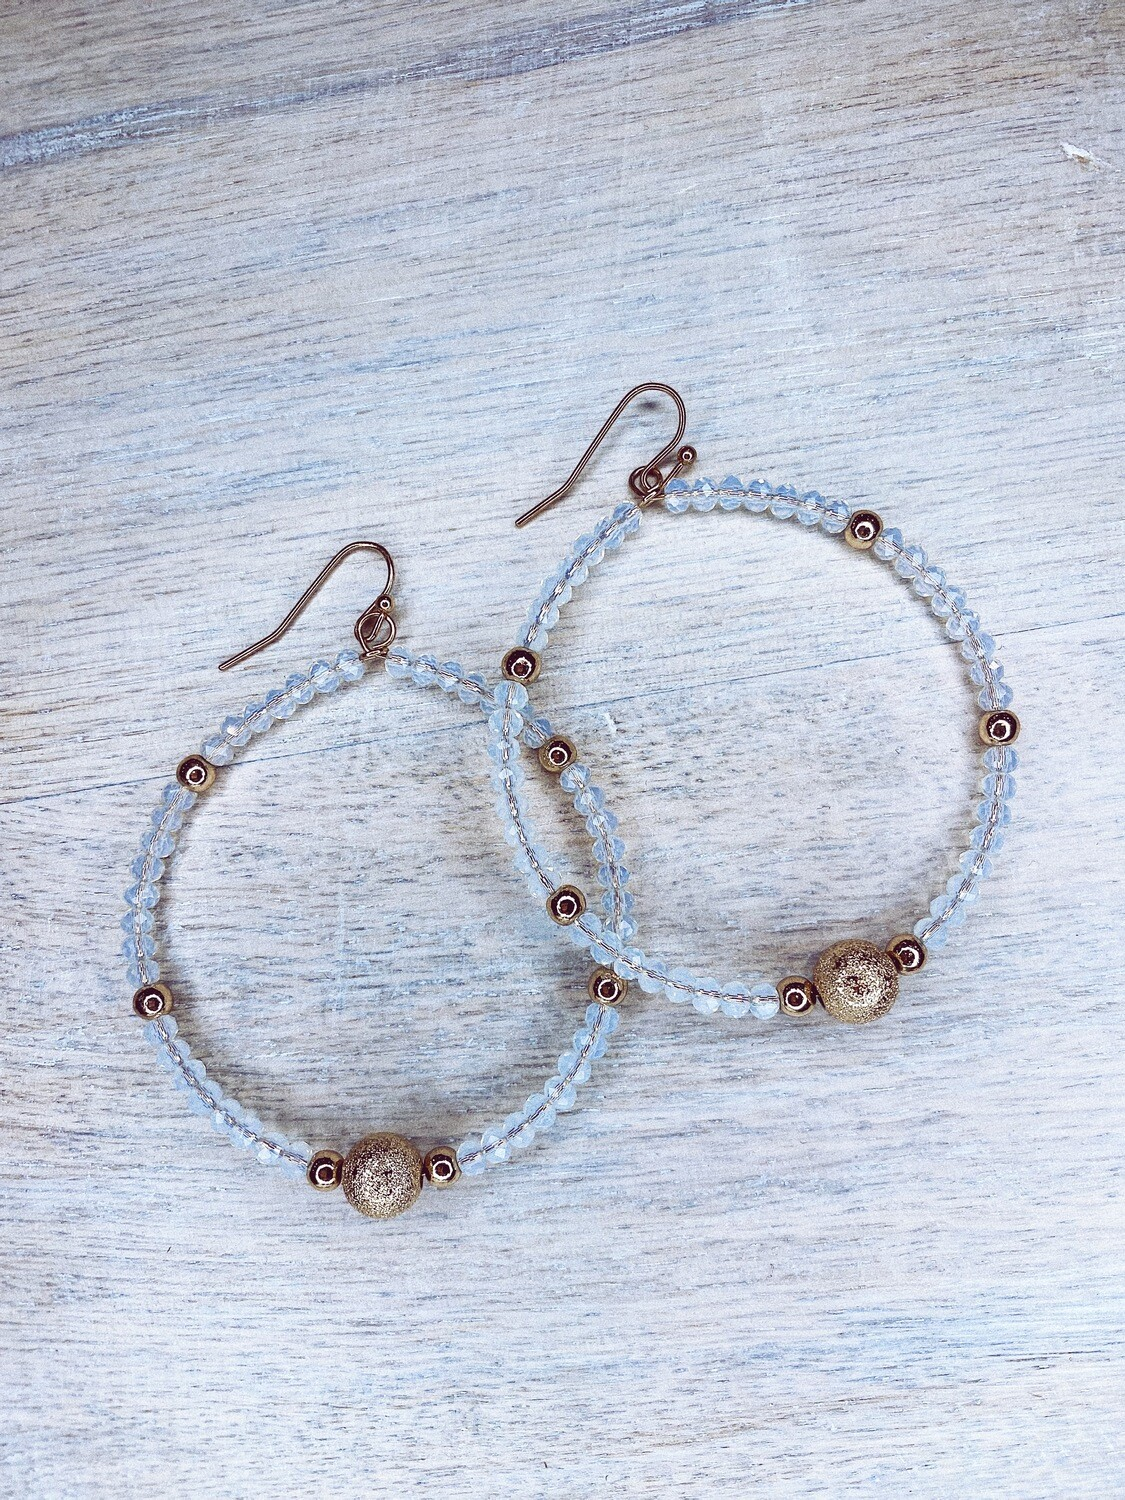 CH beaded earrings with accent beads